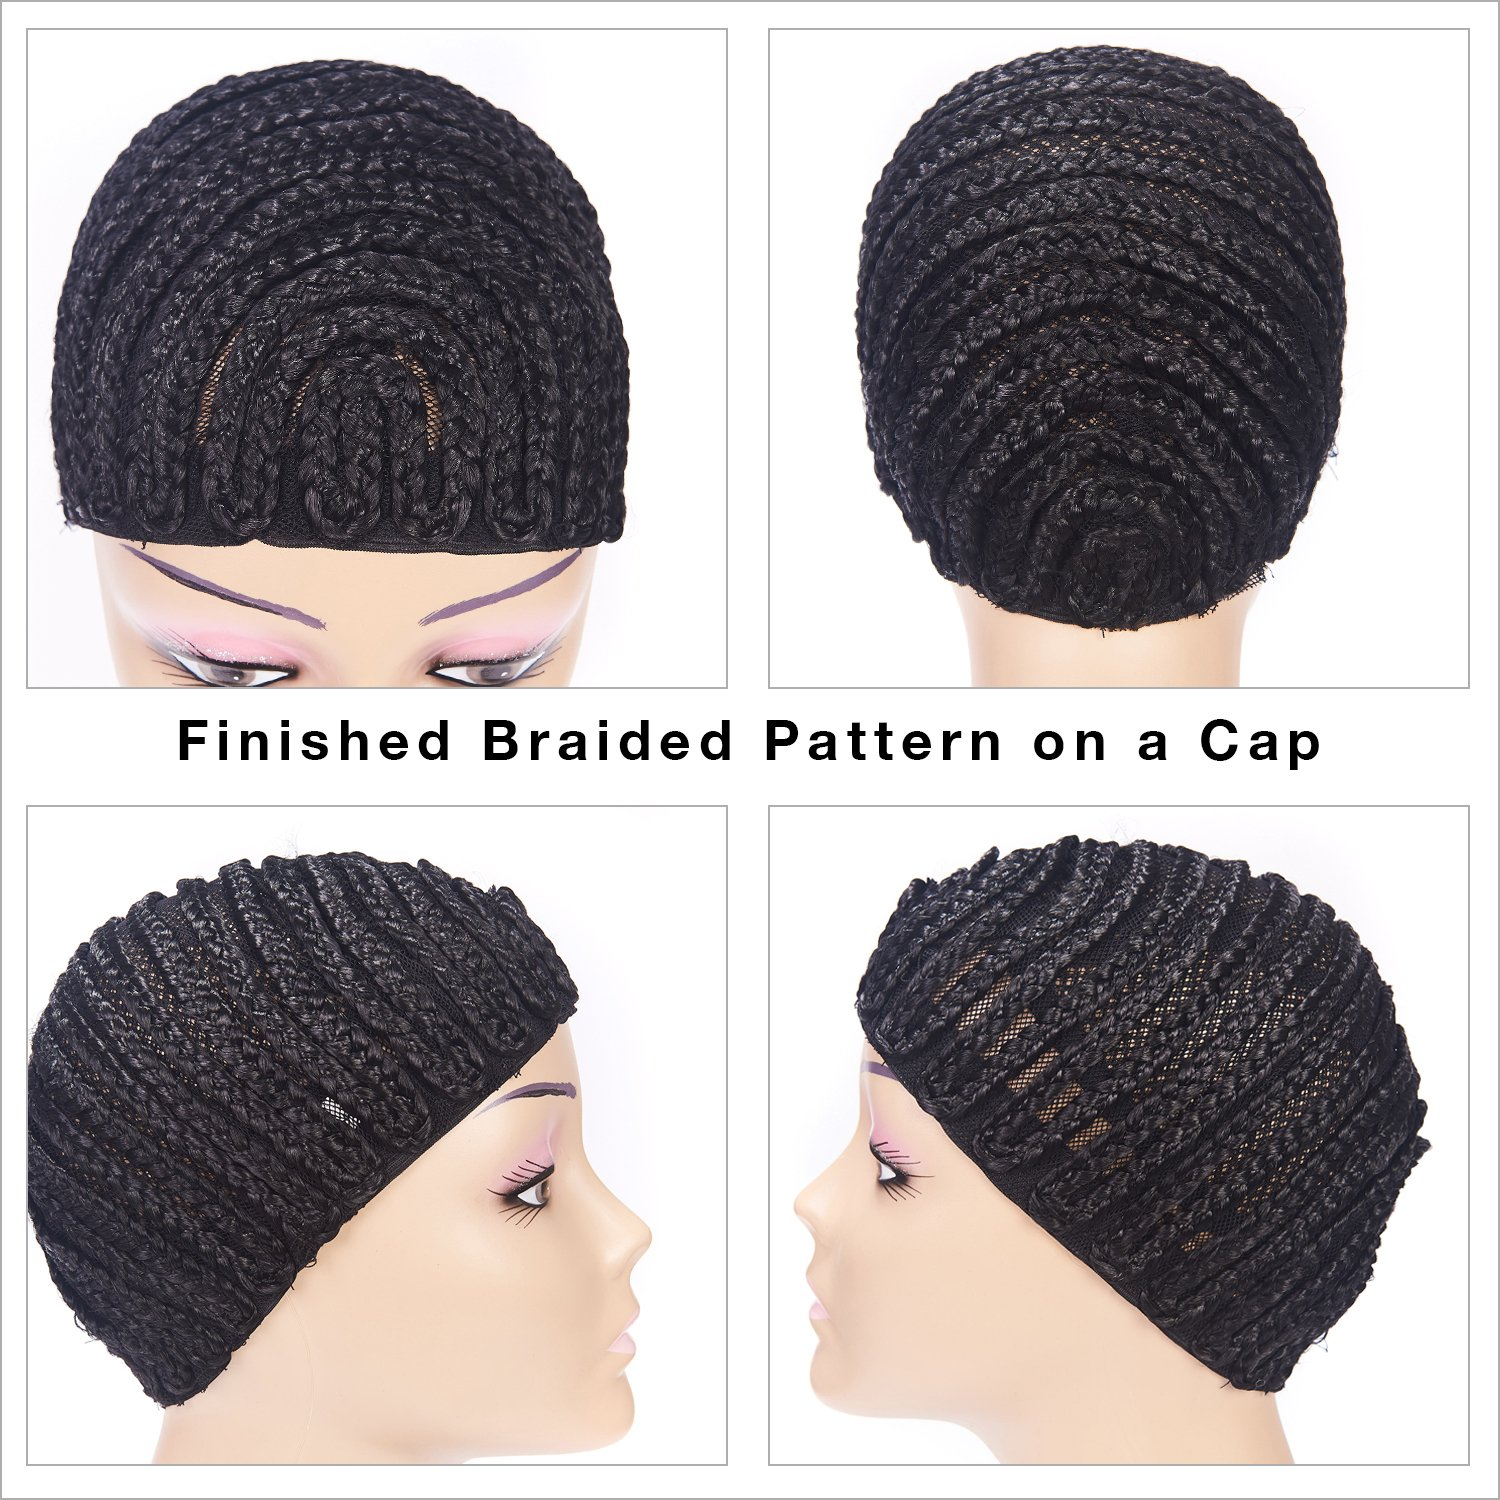 Clip in Braided Wig Caps Crochet Cornrow Cap For Easier Sew In Cap for Making Wigs Adjustable Crochet Wig Cap with 1 Free Hook Needle (L) by XFX Hair (Image #6)